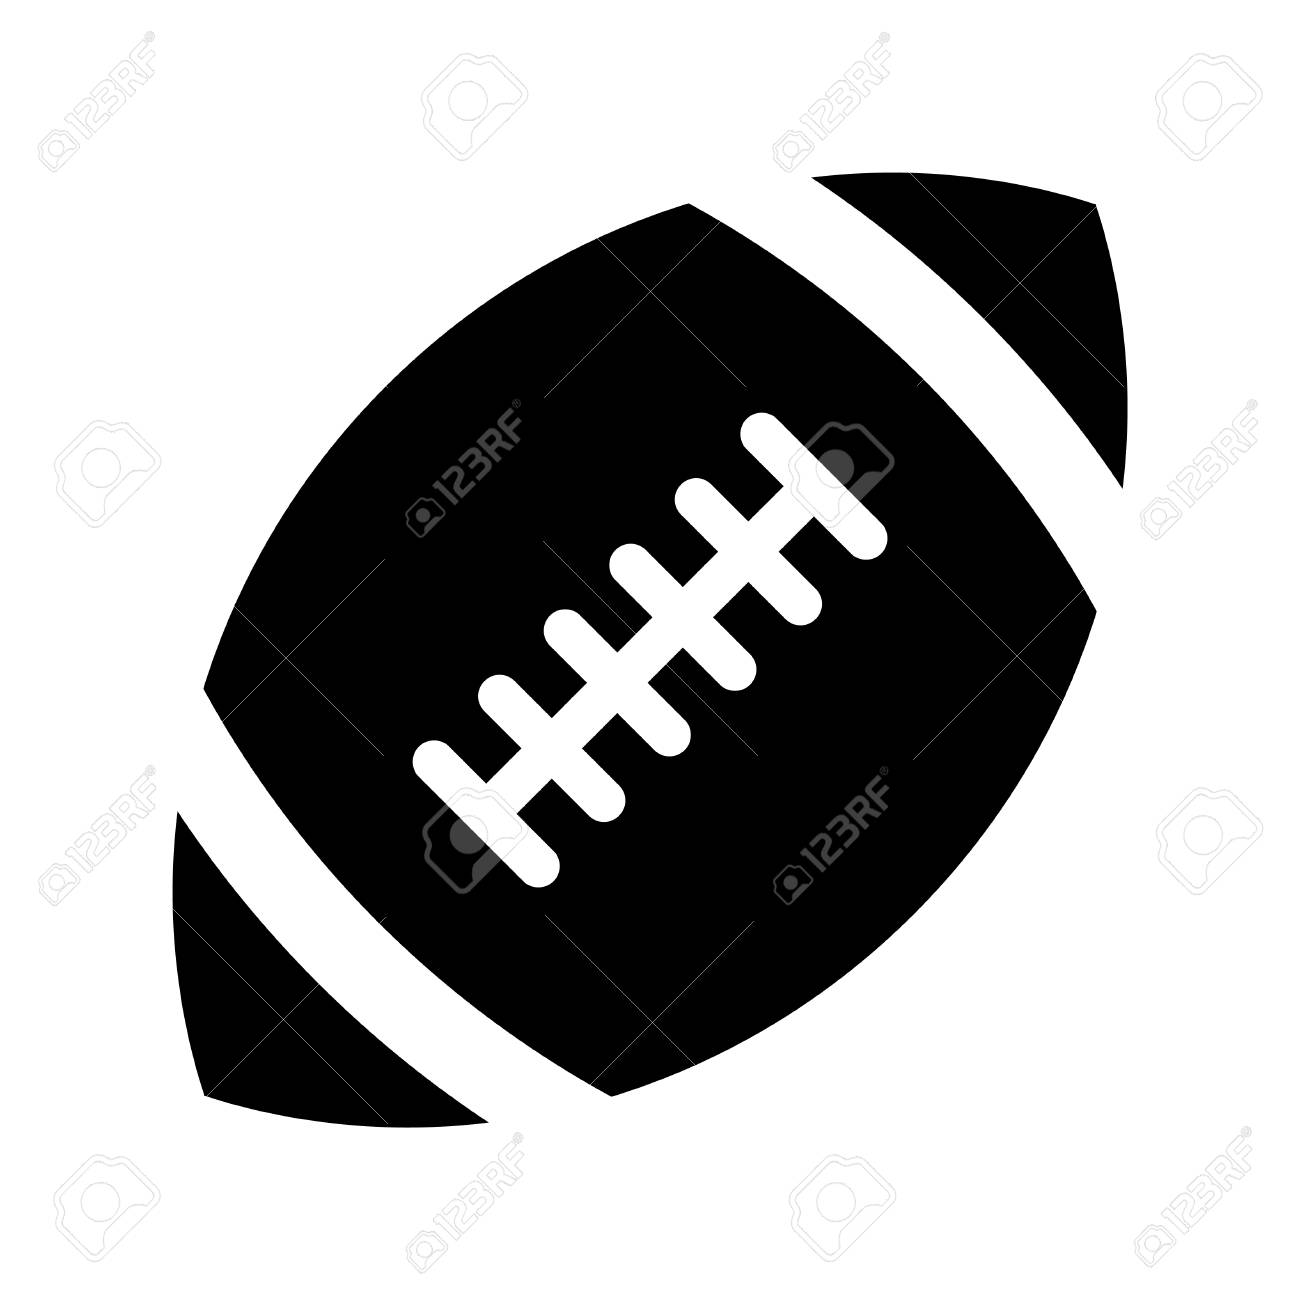 football vector icon royalty free cliparts vectors and stock rh 123rf com american football vector art american football vector images